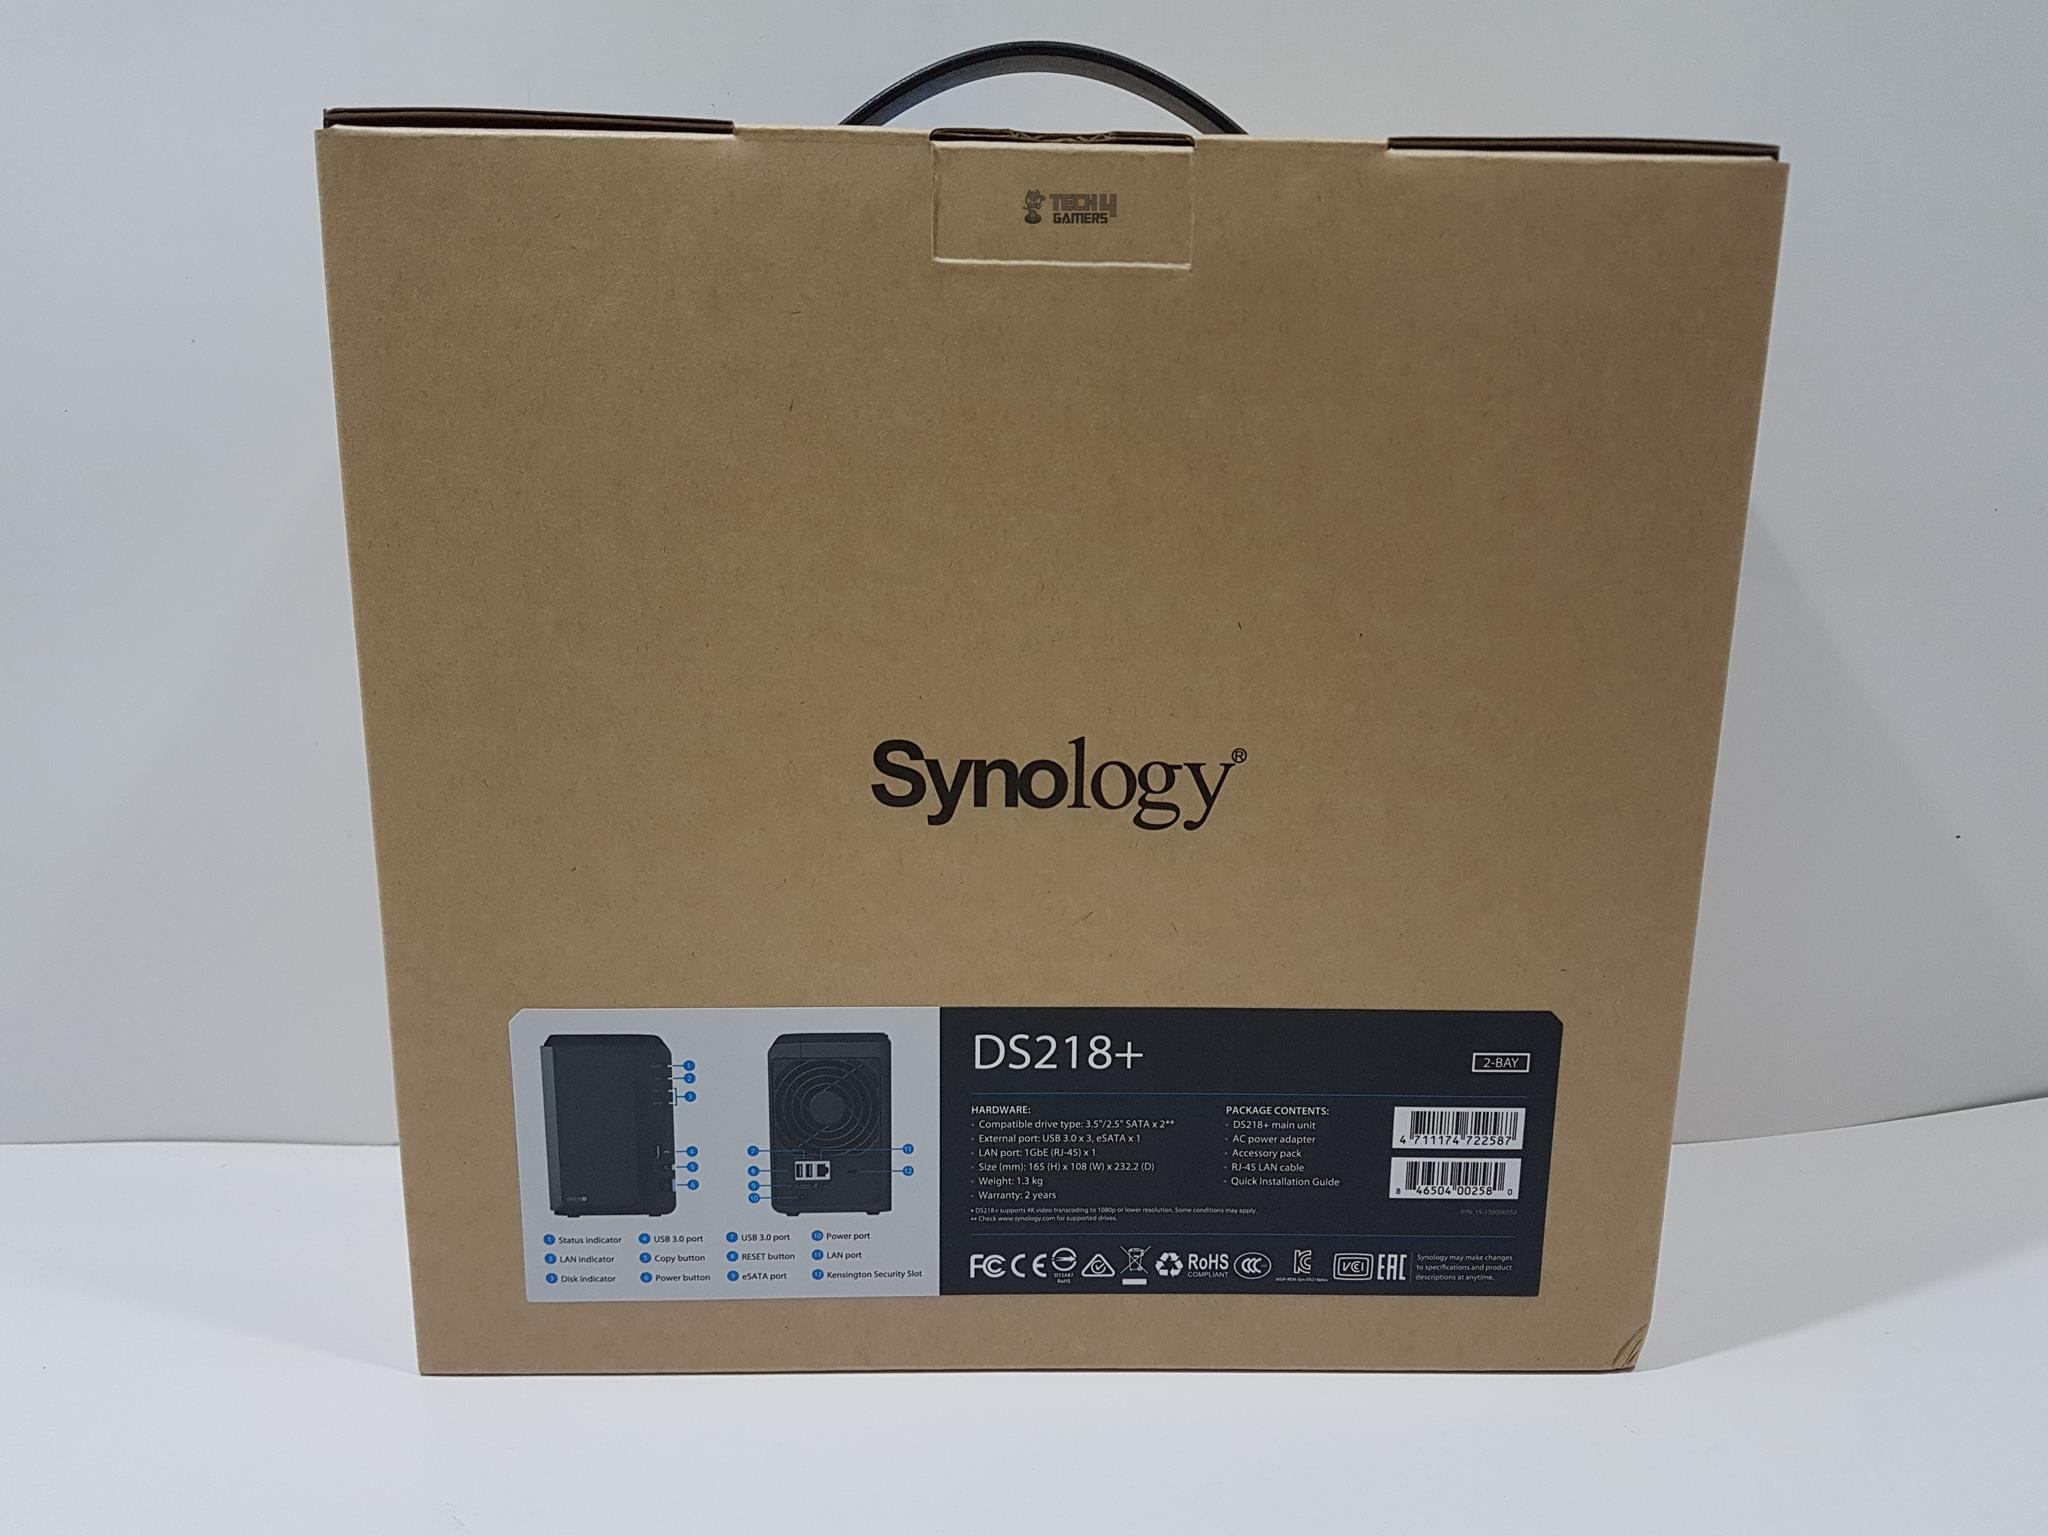 Synology 2-Bay NAS DiskStation DS218+ Review